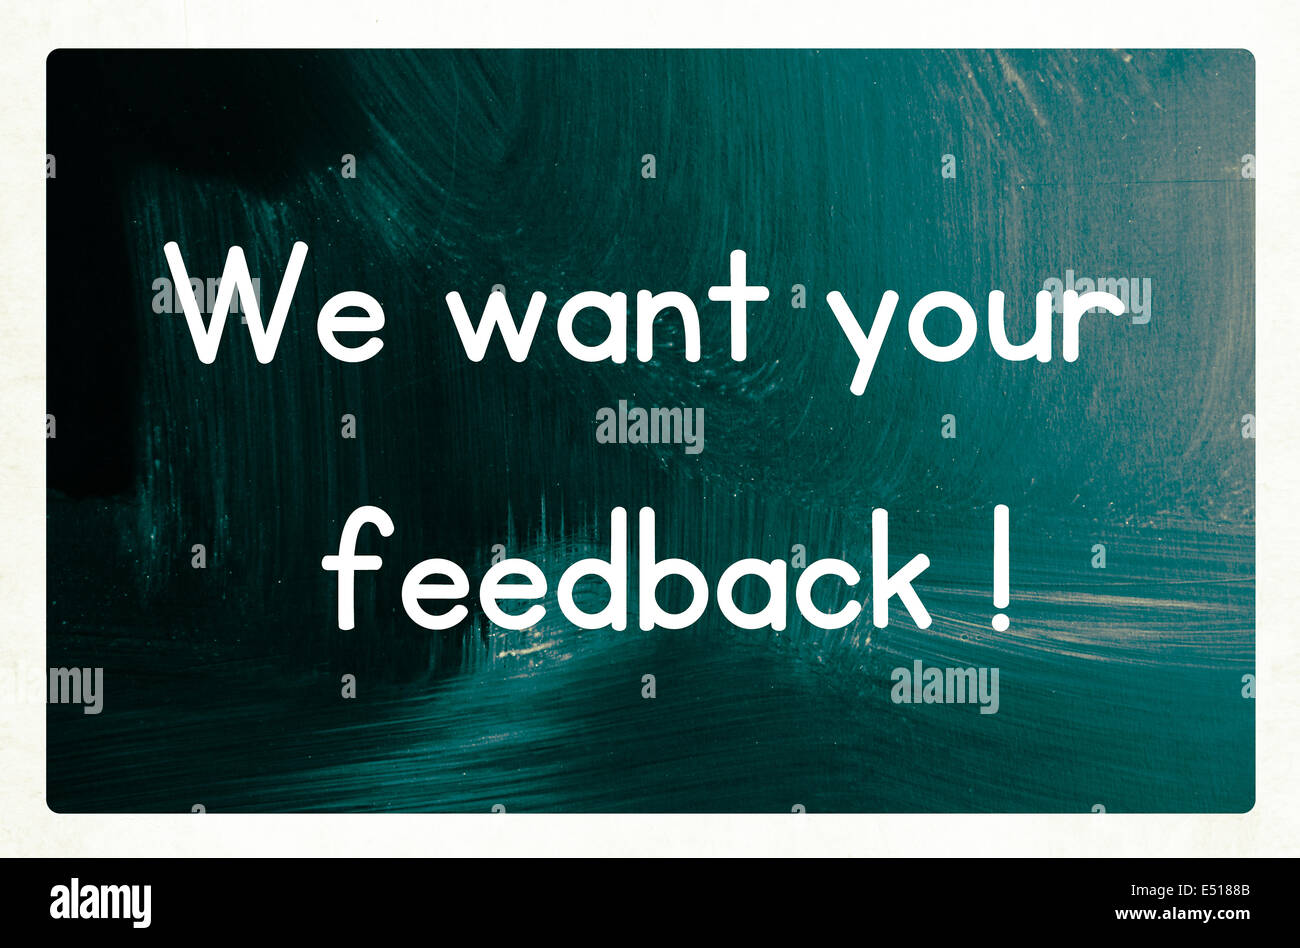 we want your feedback concept - Stock Image